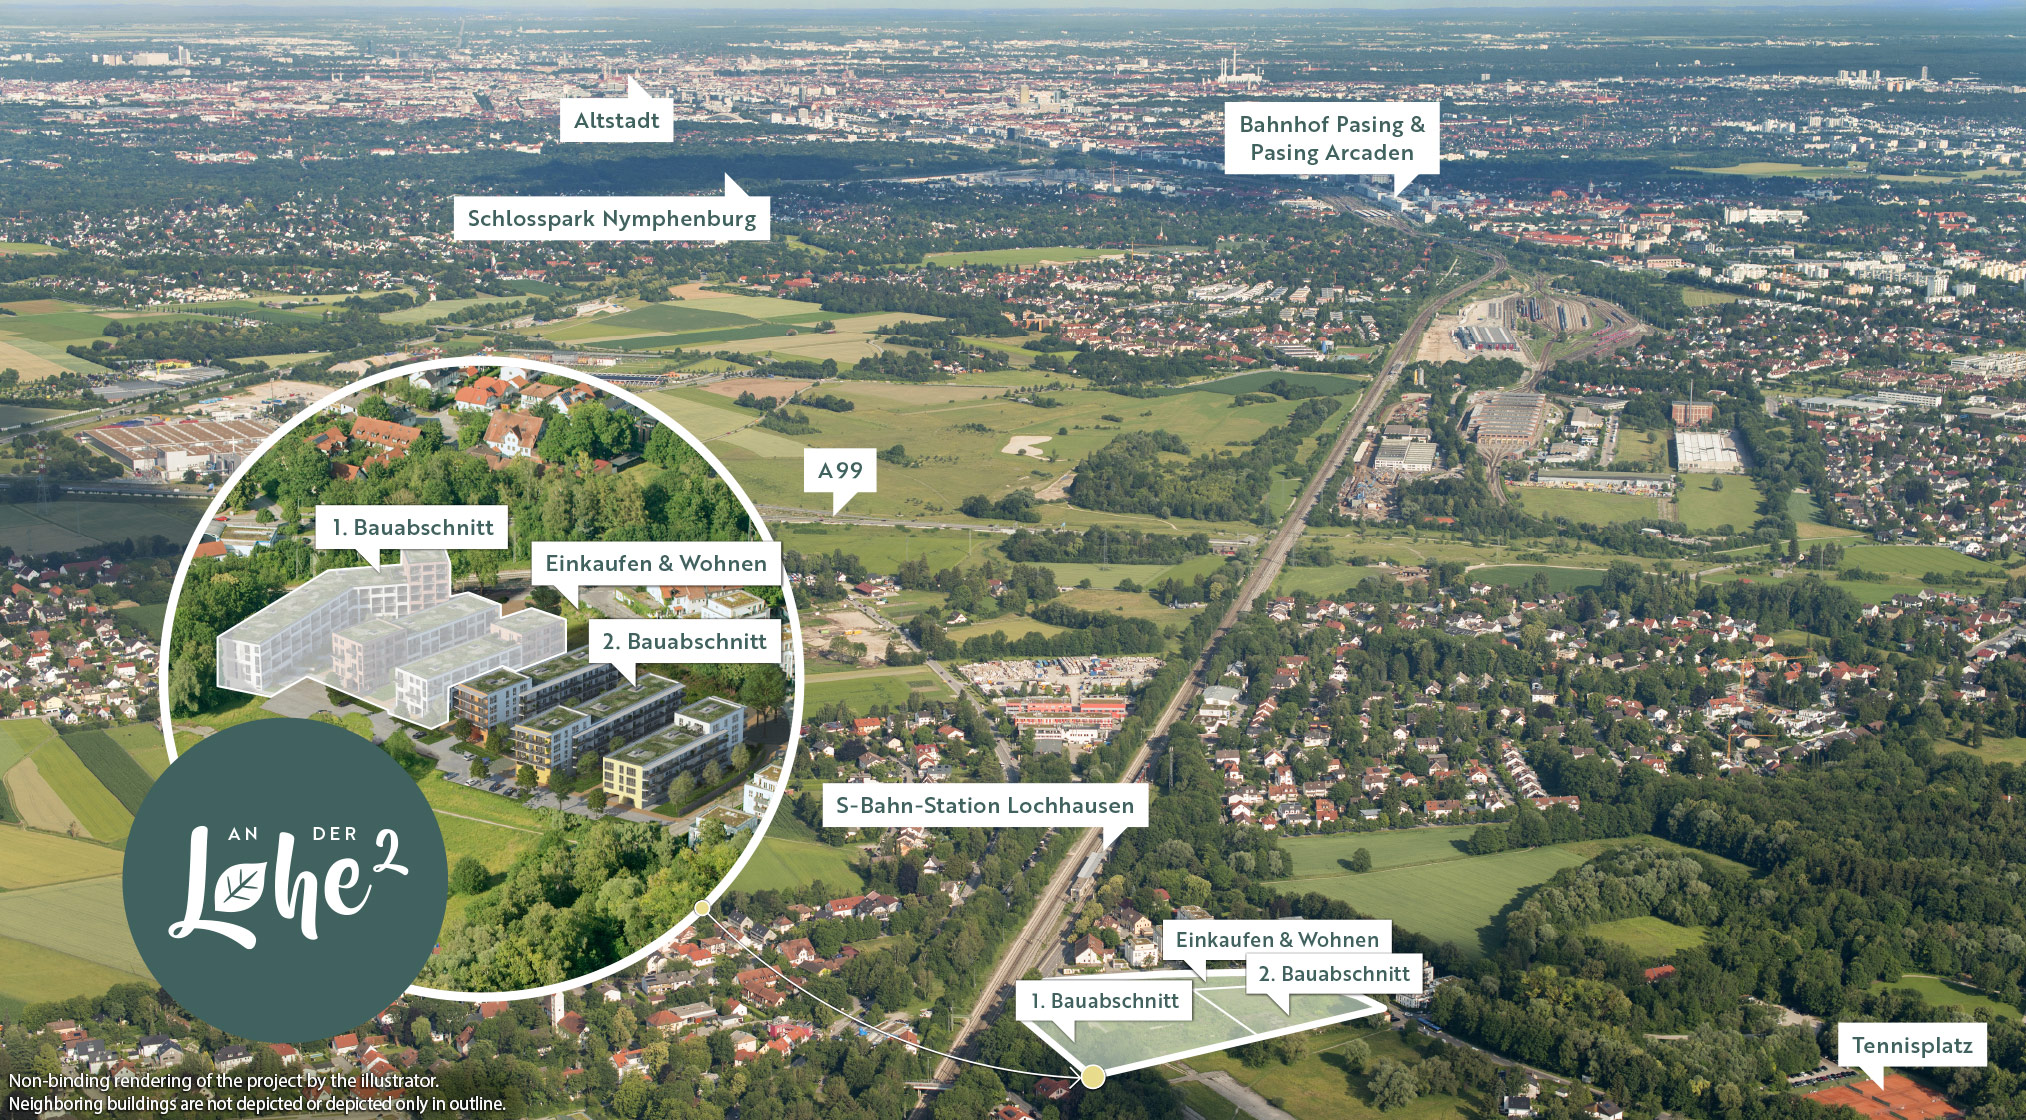 Property An der Lohe 2 - aerial photo city